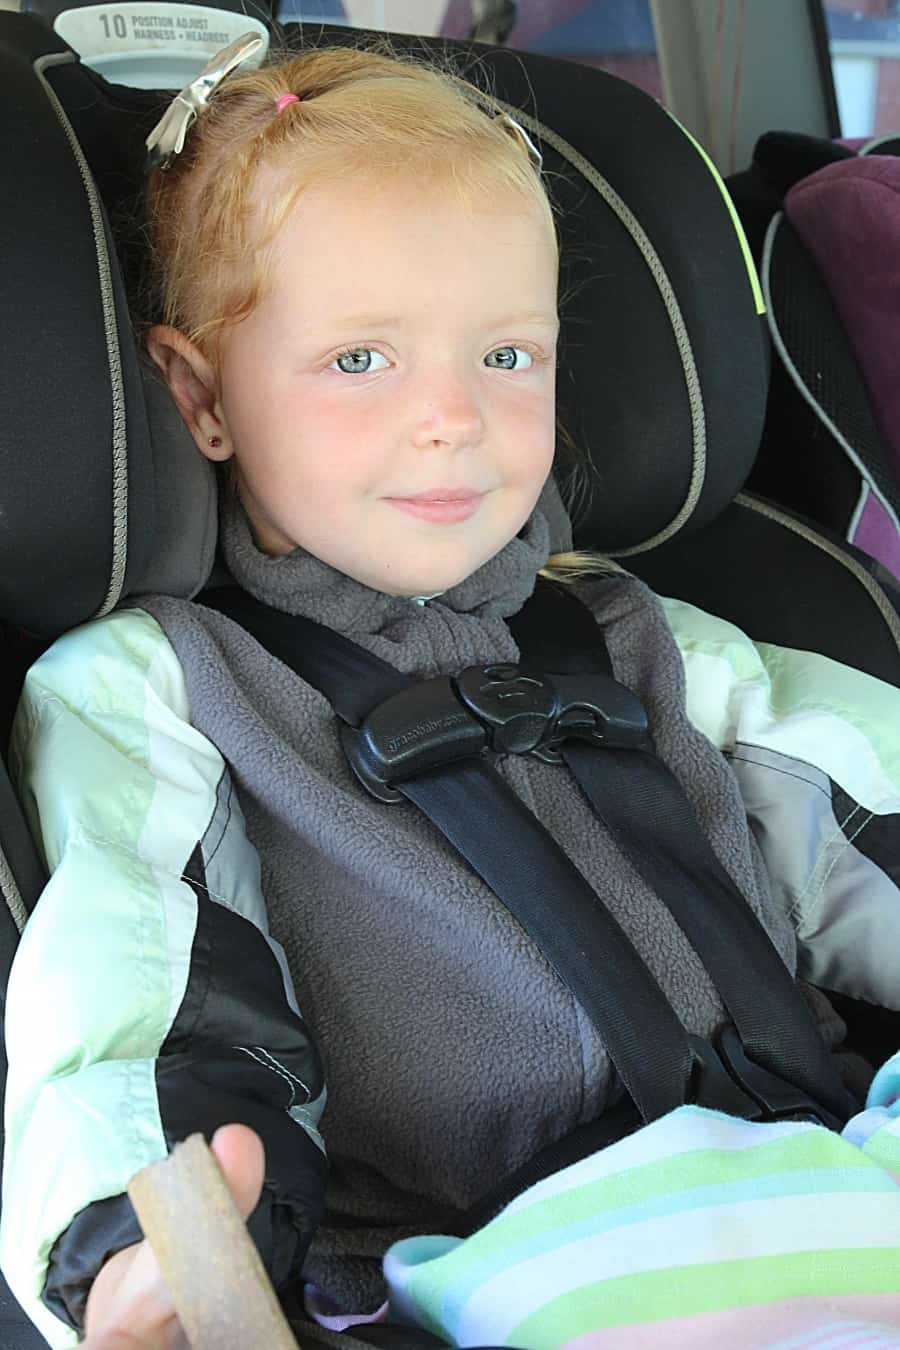 Safe Carseat Coat For Kids + The Quimby Coat Review